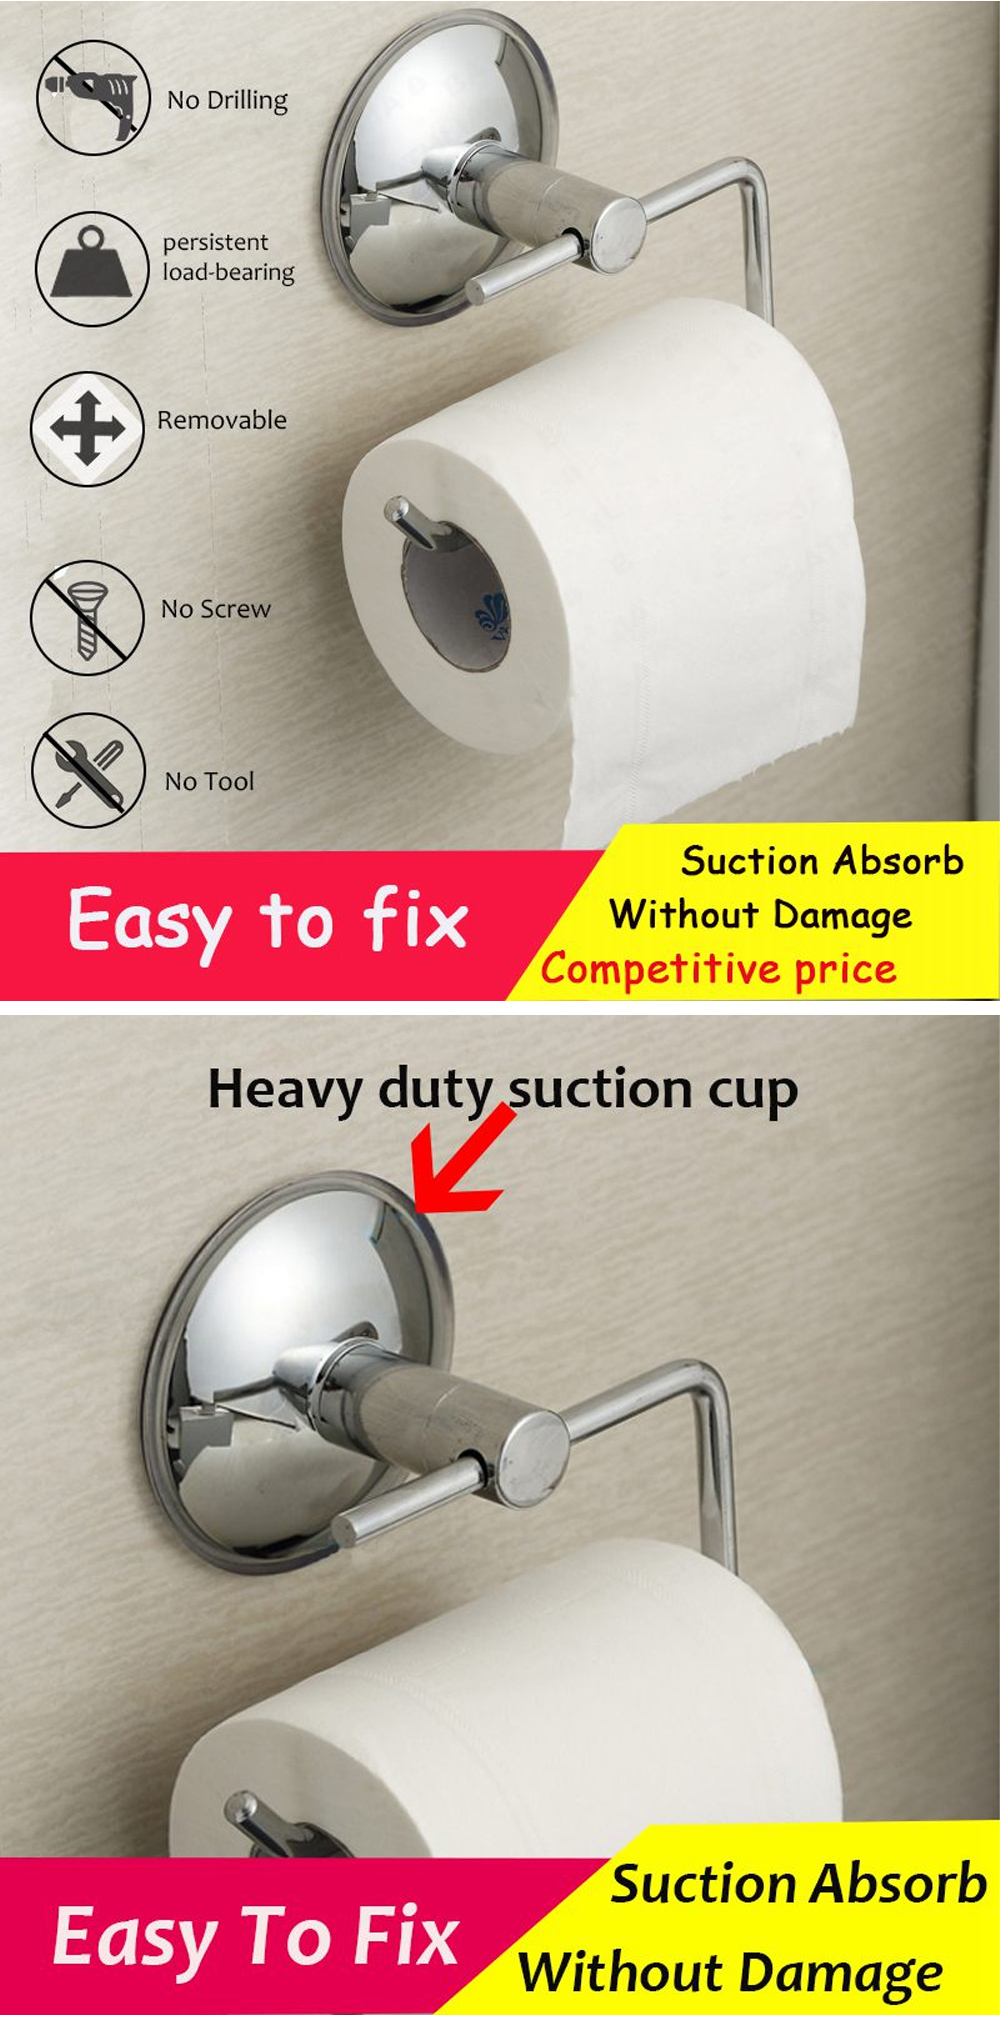 Suction Cup Rack Toilet No Drilling Silver Stainless Steel Wall Mount Bathroom Roll Paper Holder Kitchen Rustproof Hotel Durable